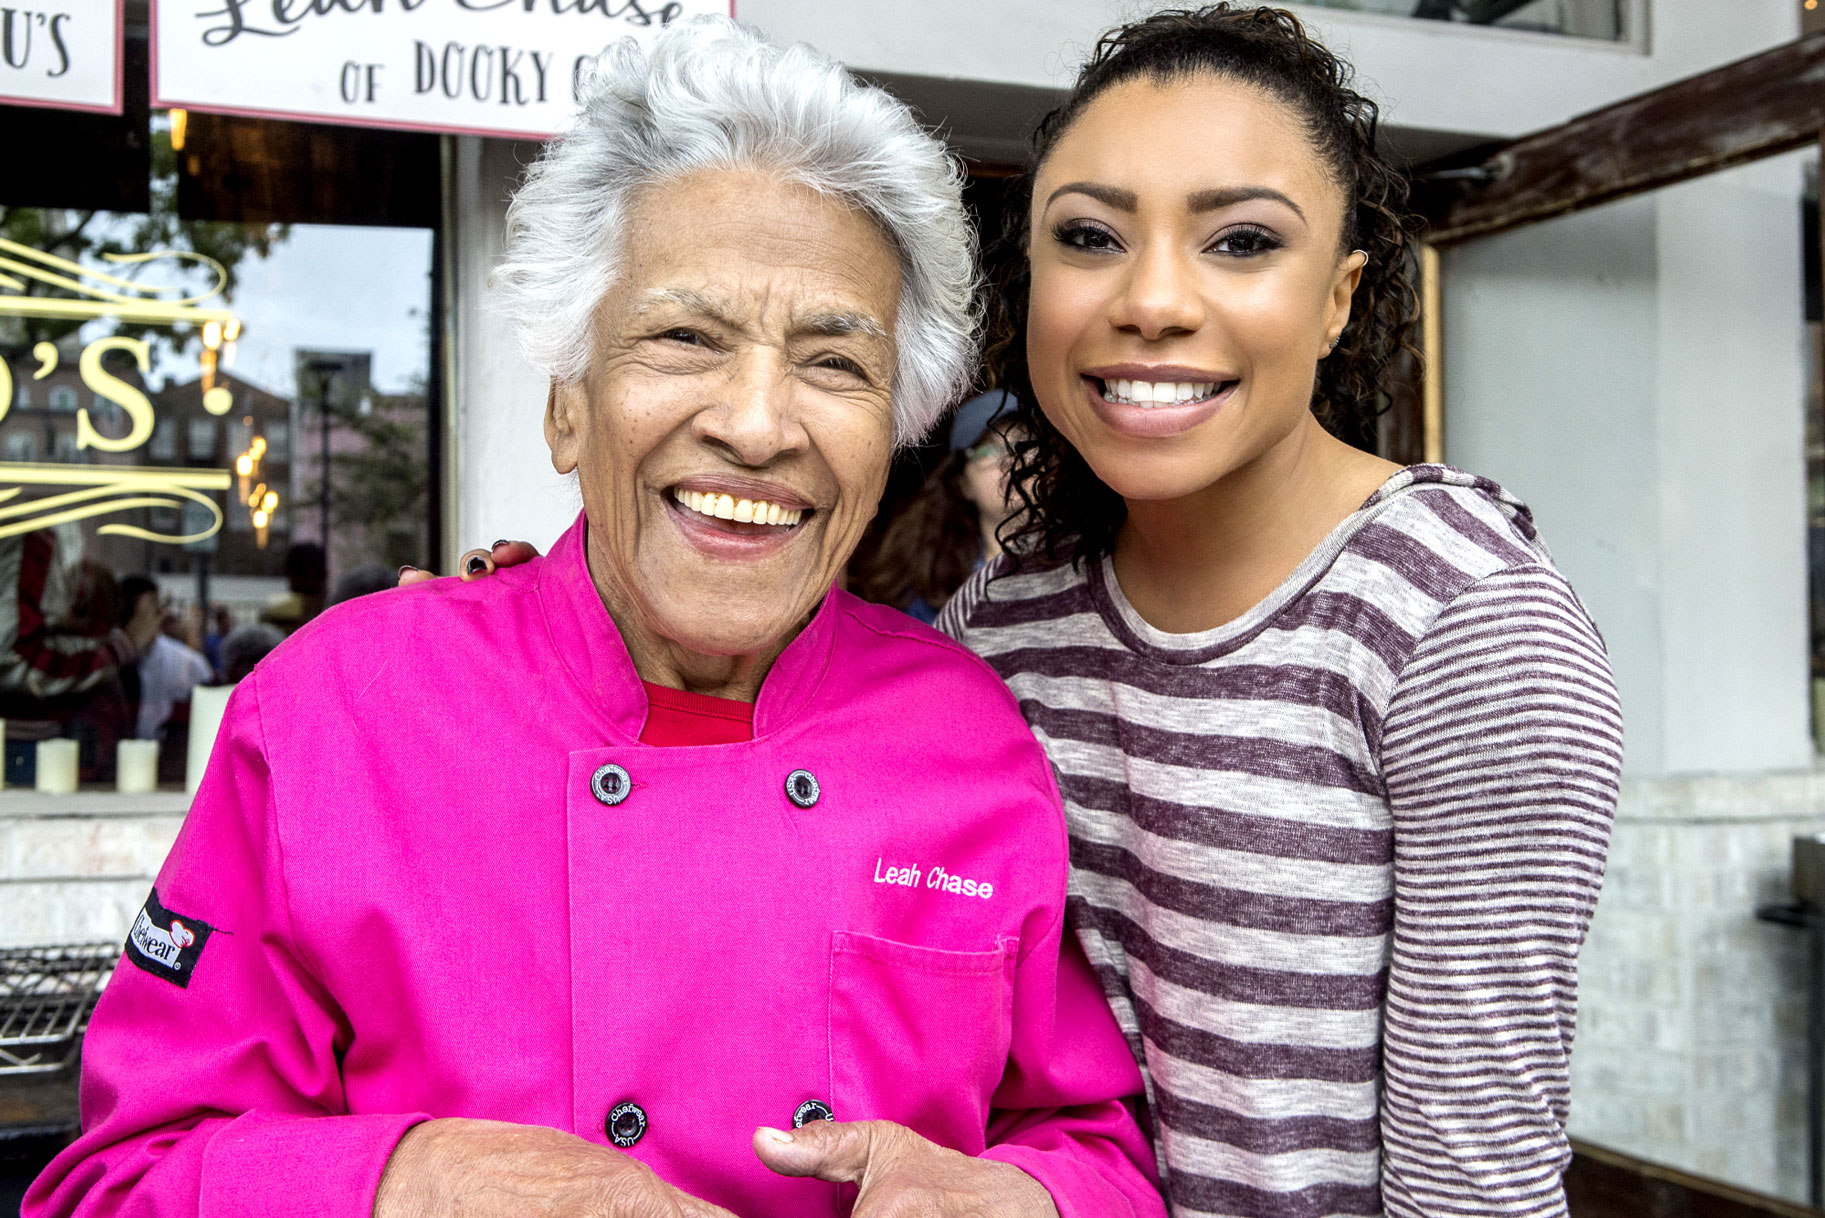 Chef Leah Chase, Gizelle Bryant